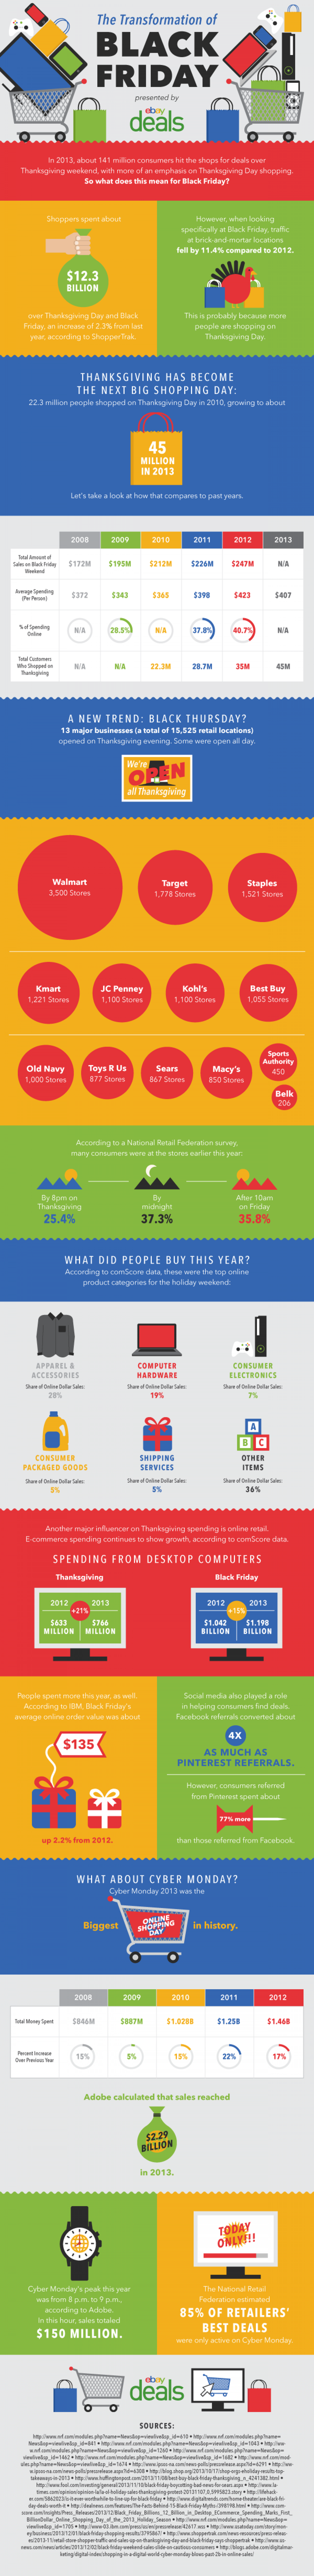 The Transformation of Black Friday Infographic